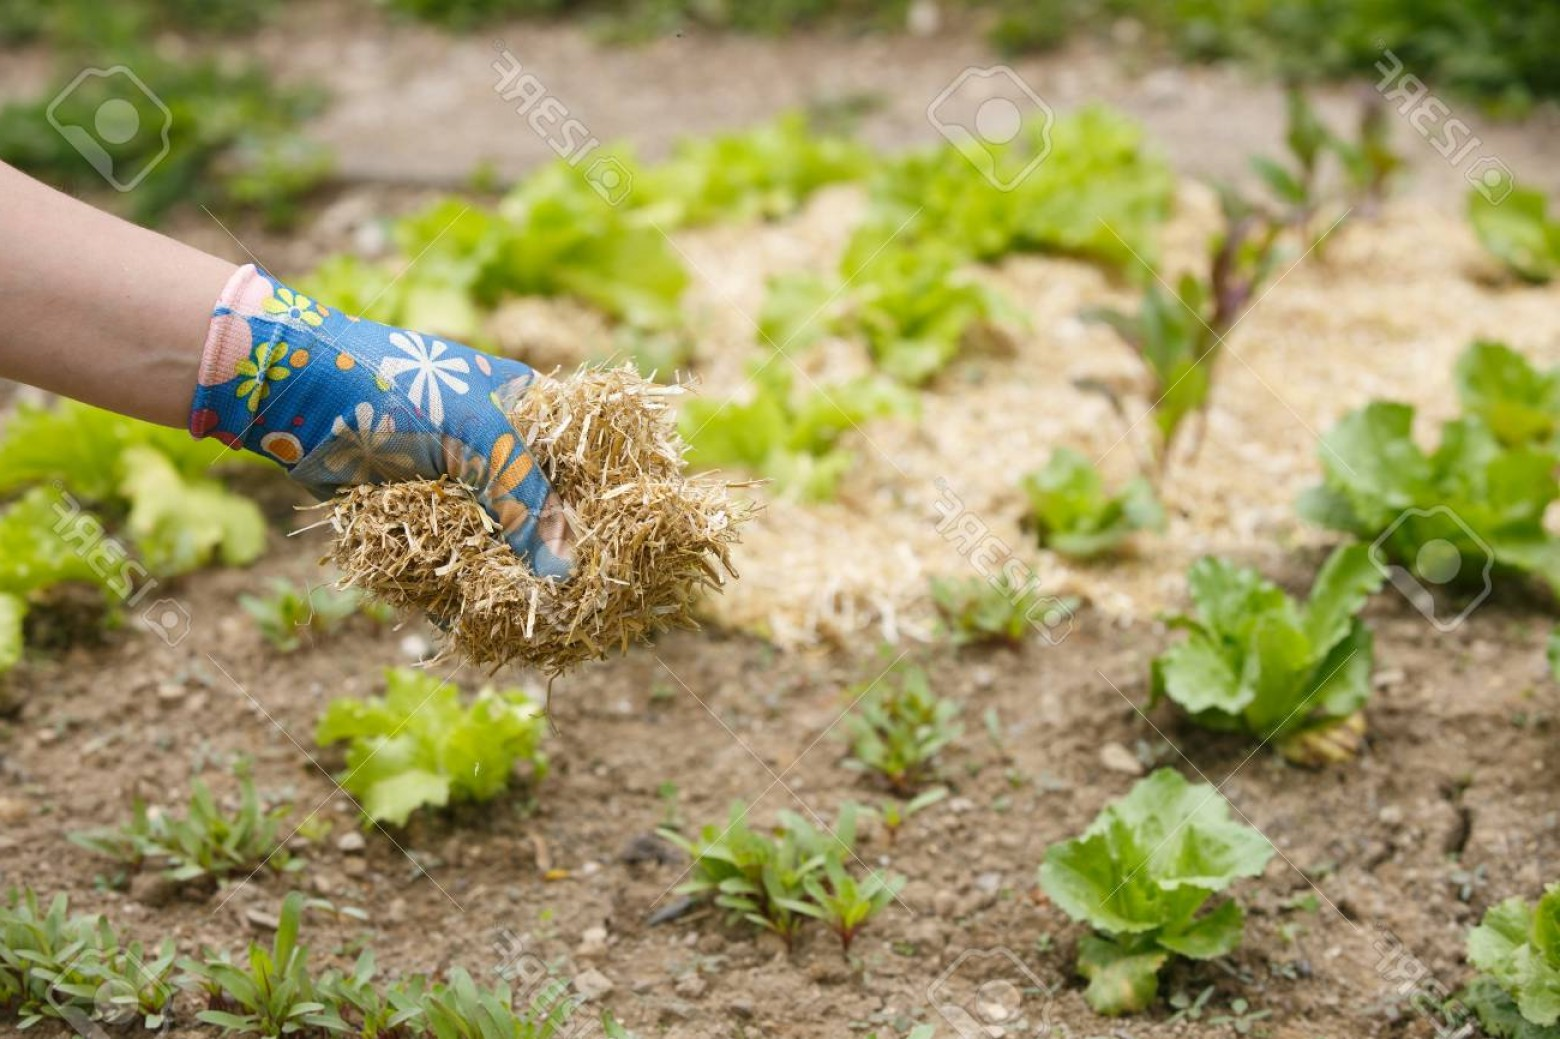 Vector 300 Fertilizer Spreading: Photogardener Spreading A Straw Mulch Around Planted Seedlings To Fertilize And Protect It From The Droug